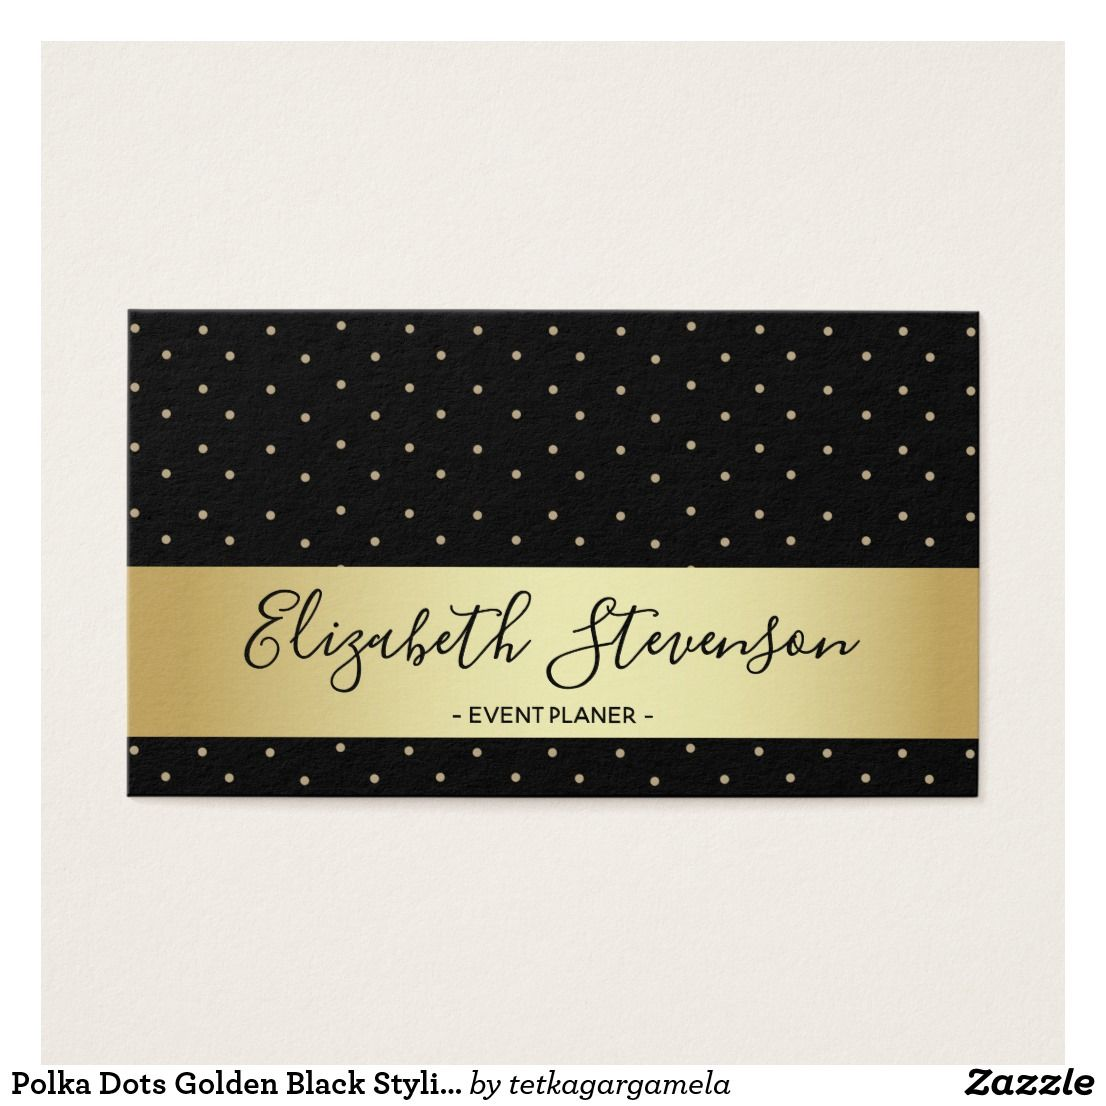 Polka Dots Golden Black Stylish Modern Glam Fancy Business Card